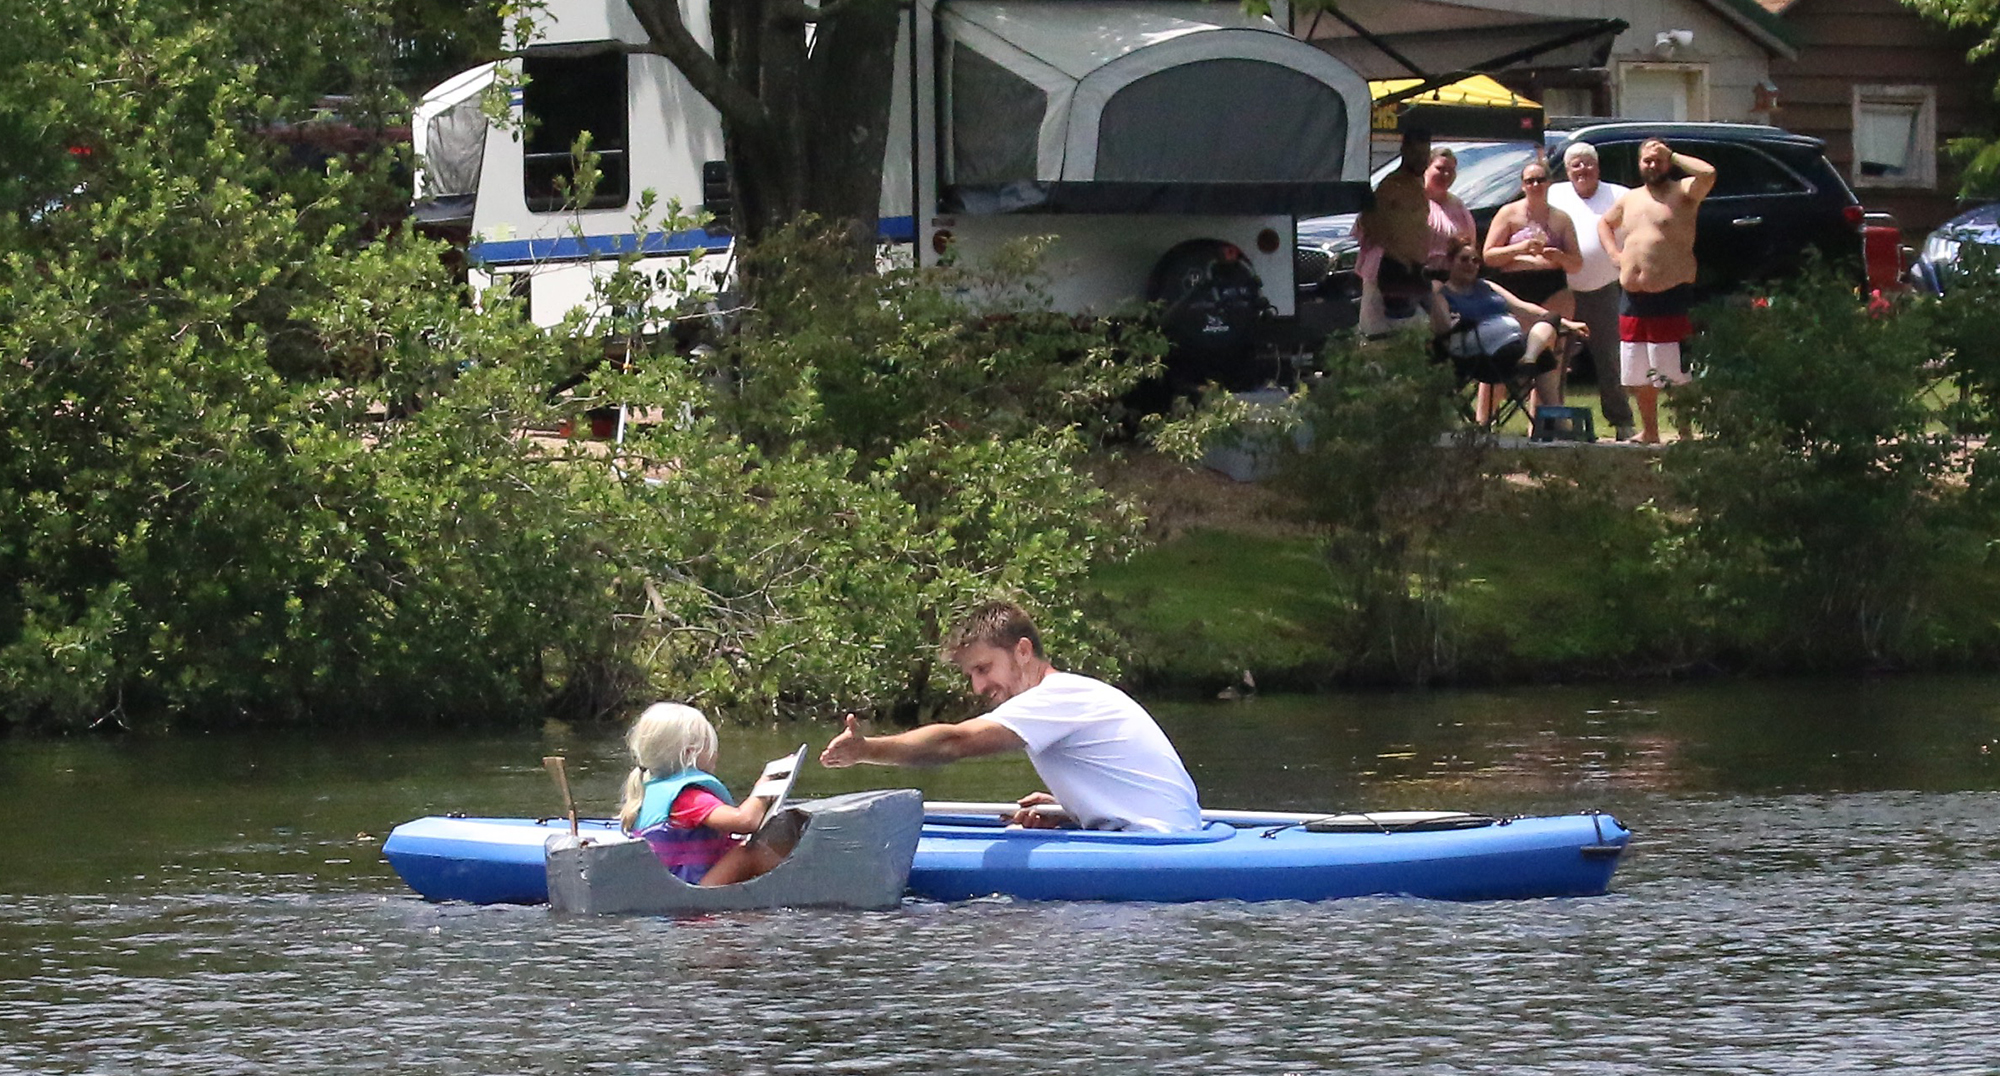 Paul Janda, who owns the Tilleda Falls Campground with Rachel Janda, waits for a high-five from Kaylie Olson as she makes the corner in her cardboard boat, while a group of spectators watches safely from the shore.Carol Ryczek | NEW Media